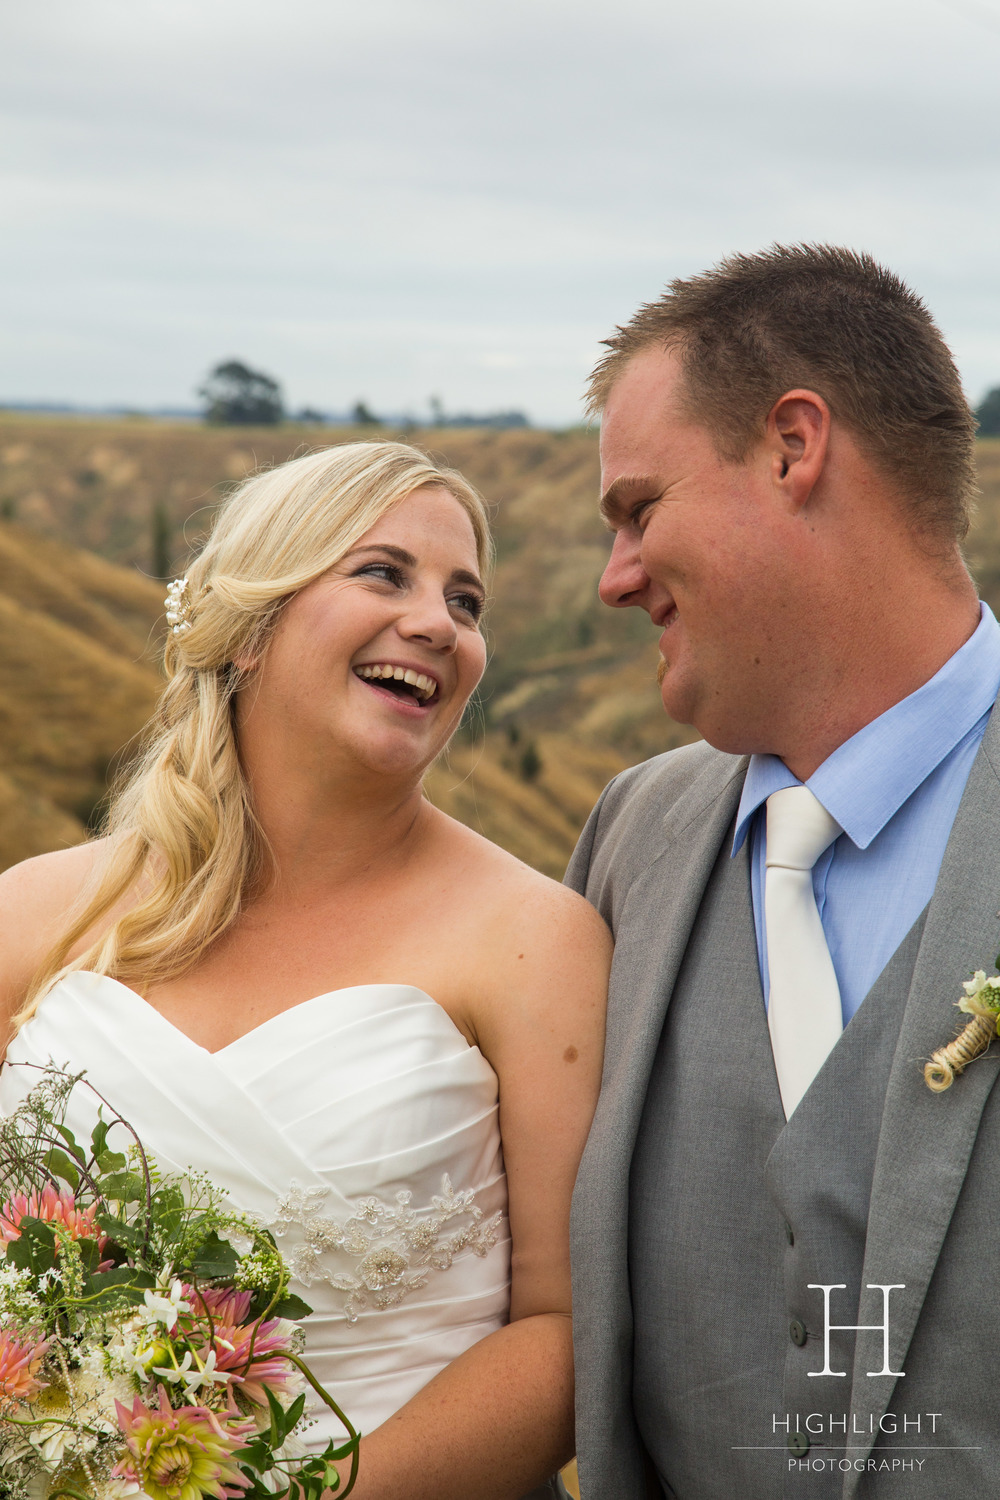 highlight__photography_wedding_new-zealand.jpg